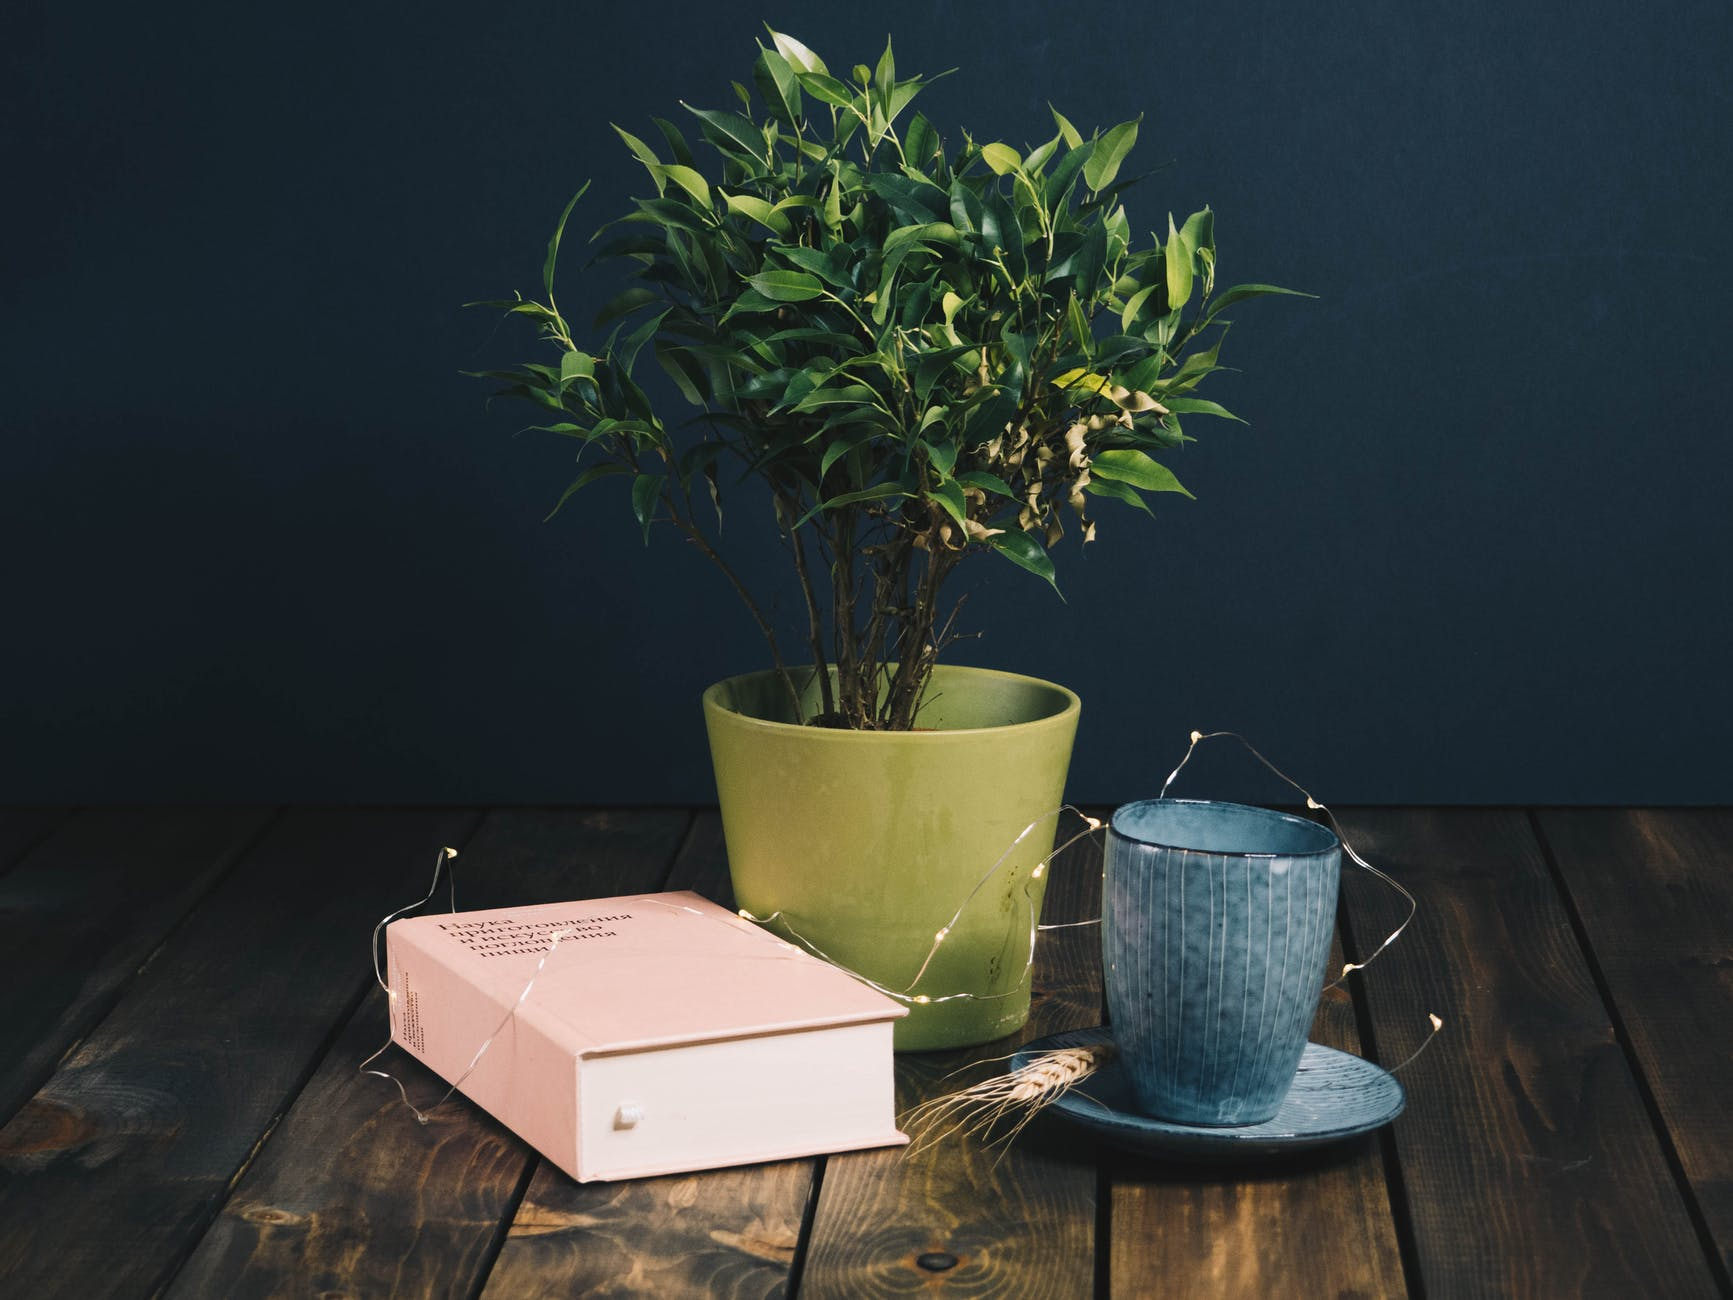 A photography pic of a pink book next to a green plant pot with a tree in it and next to that a blue cup and saucer. All with fairy lights laying over it.